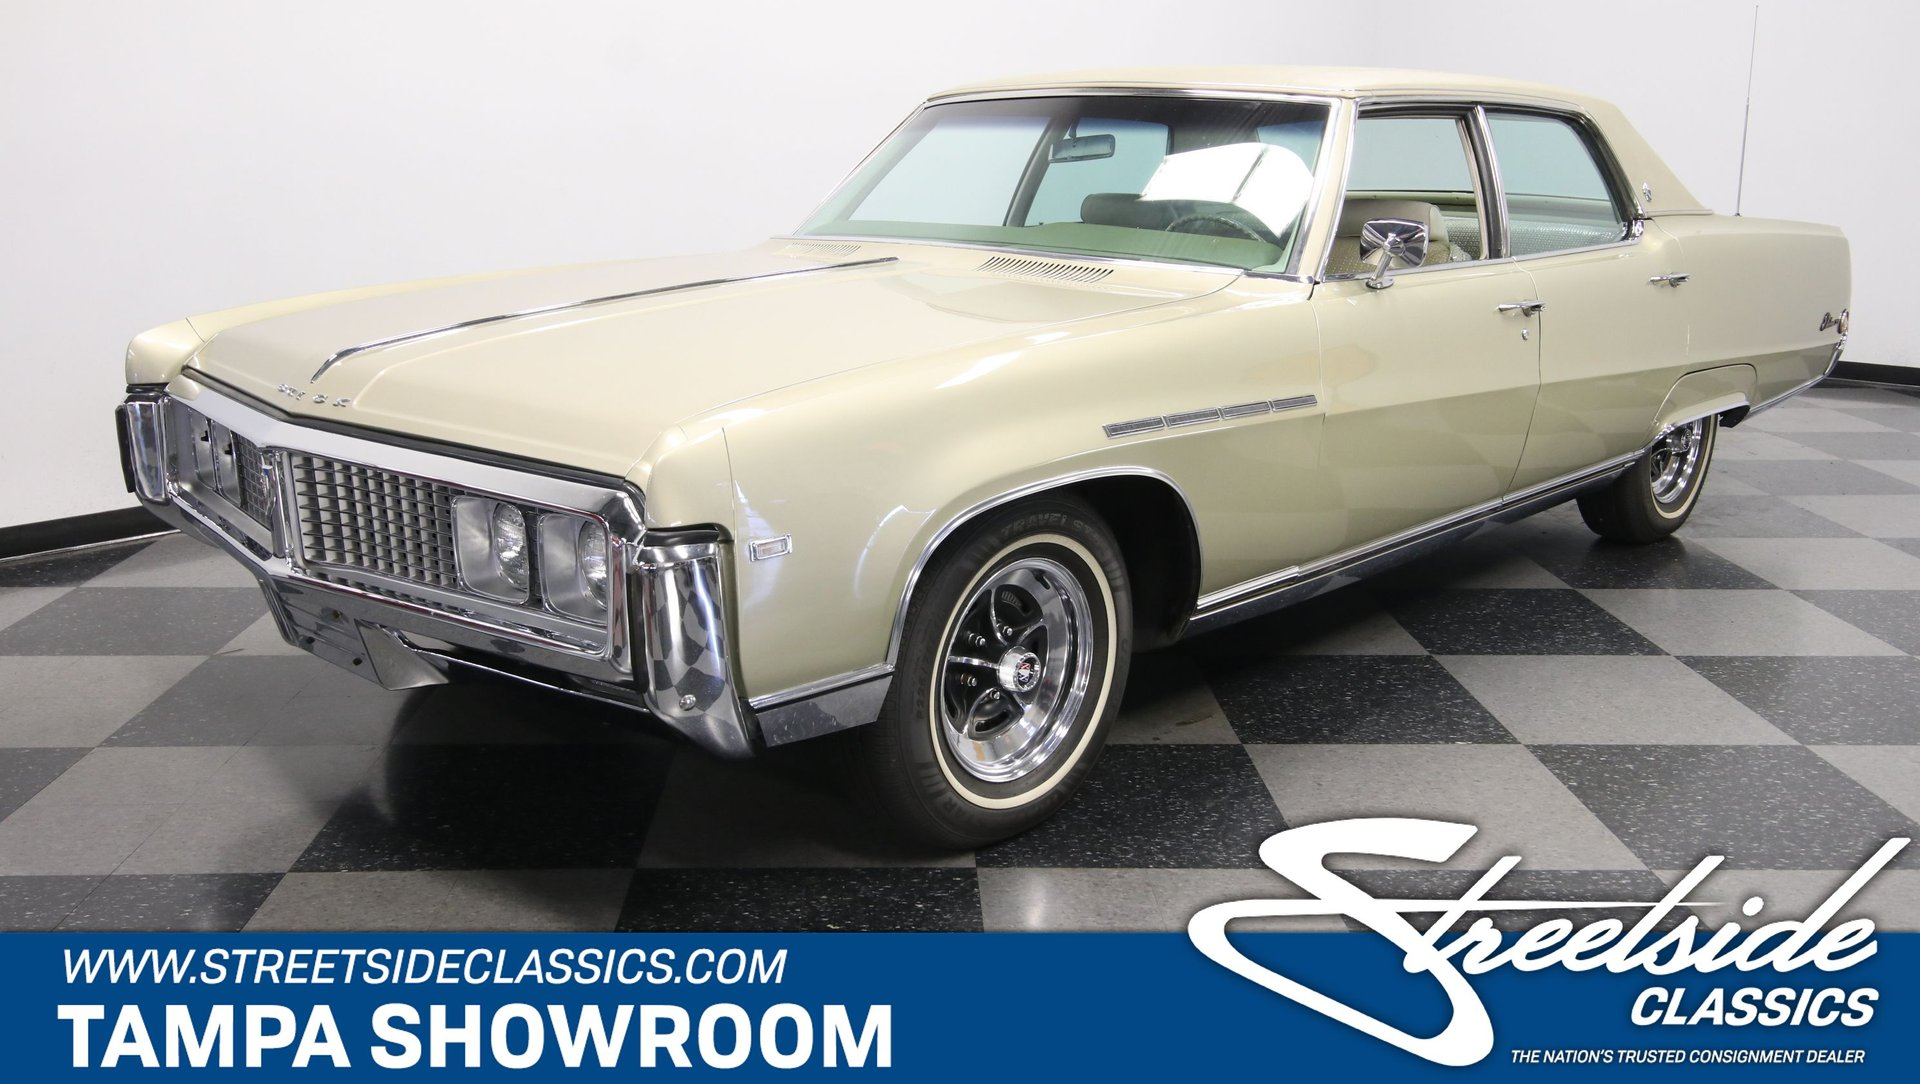 1969 buick electra 225 streetside classics the nation s trusted classic car consignment dealer 1969 buick electra 225 streetside